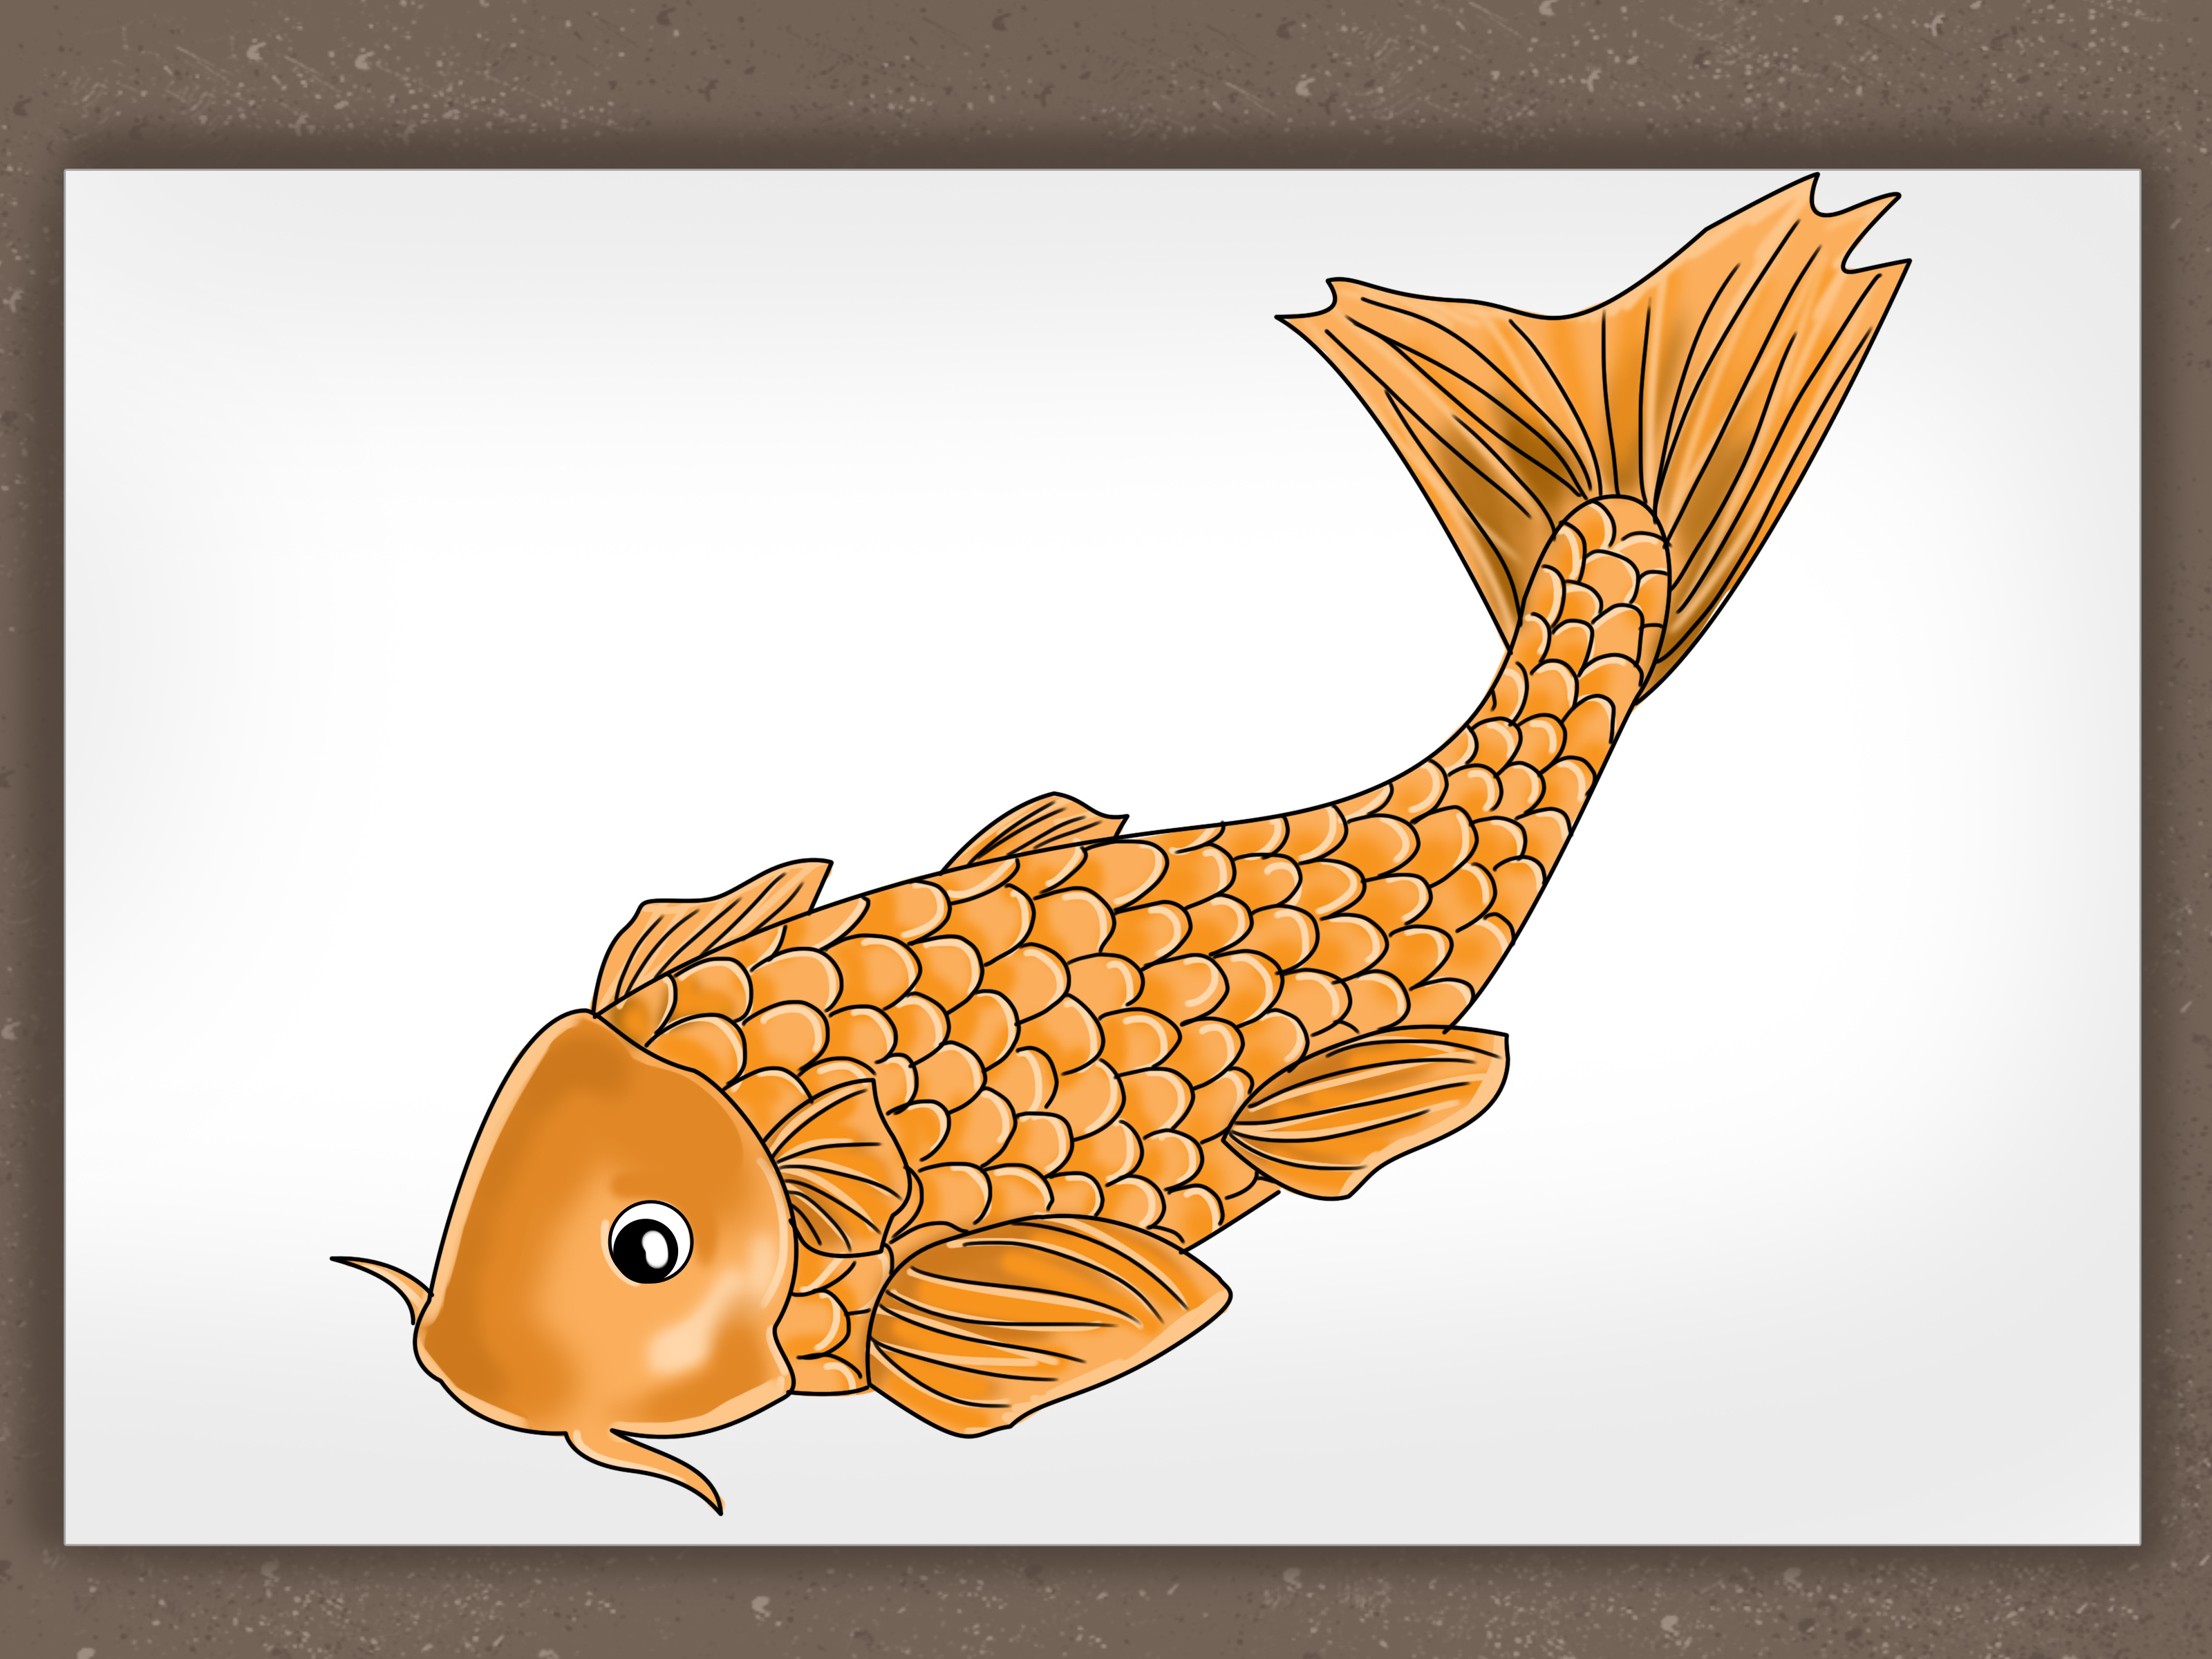 3200x2400 How To Draw A Koi Fish 7 Steps (With Pictures)